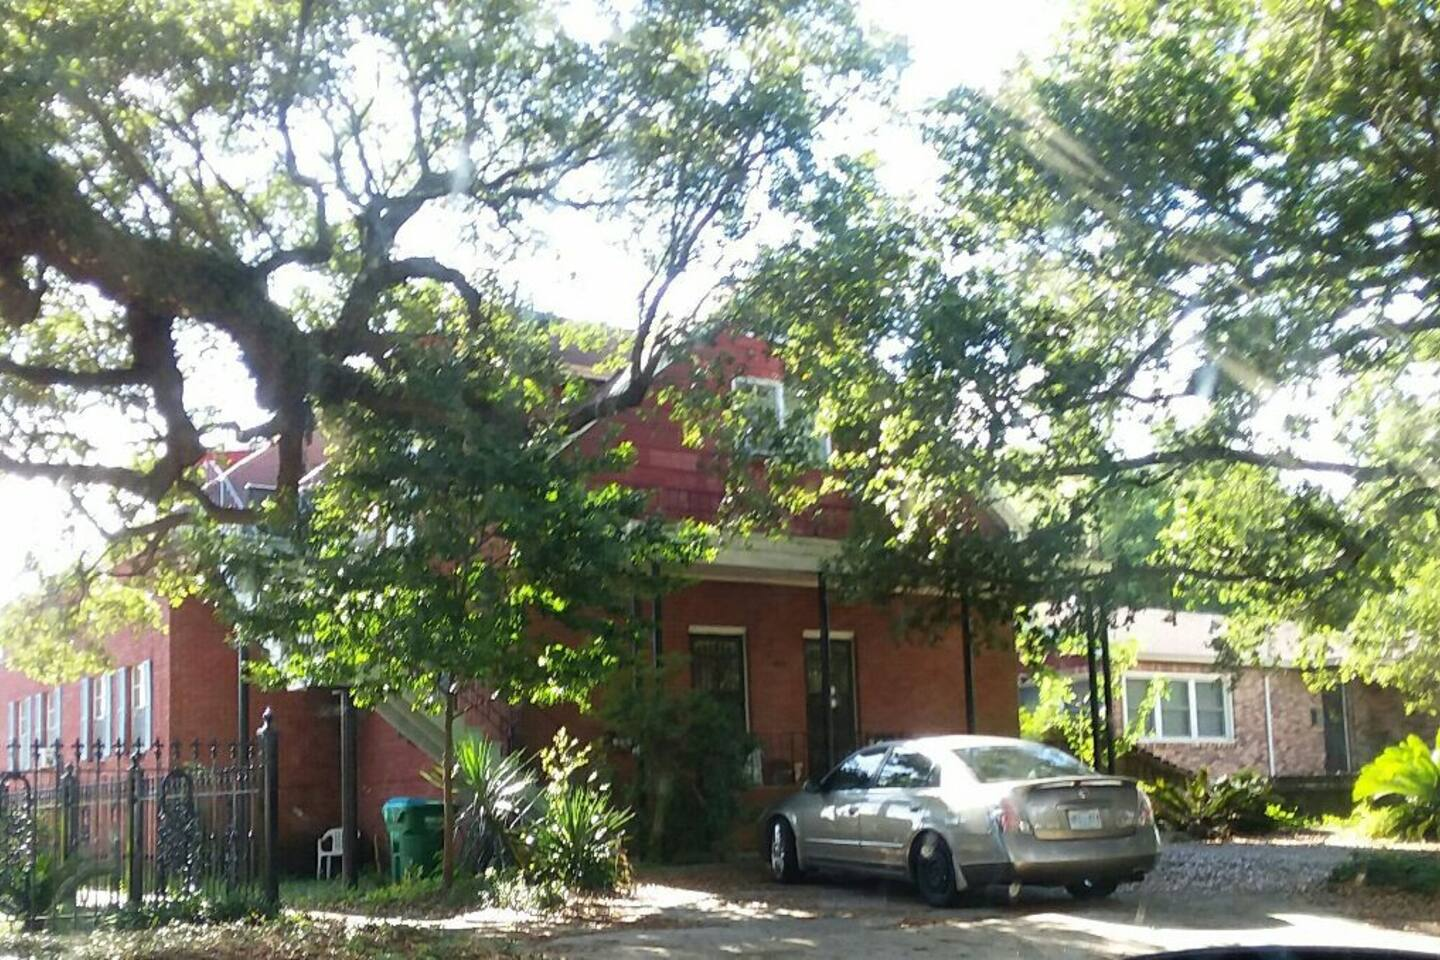 THE MAIN HOUSE is a Two story, red brick house over 100 years old.  The huge oak is over 320 years old.  The Beach Balcony Suite is at the top of the staircase-A nice porch as you enter the foyer.  The neighborhood is old-& two blocks from the beach.